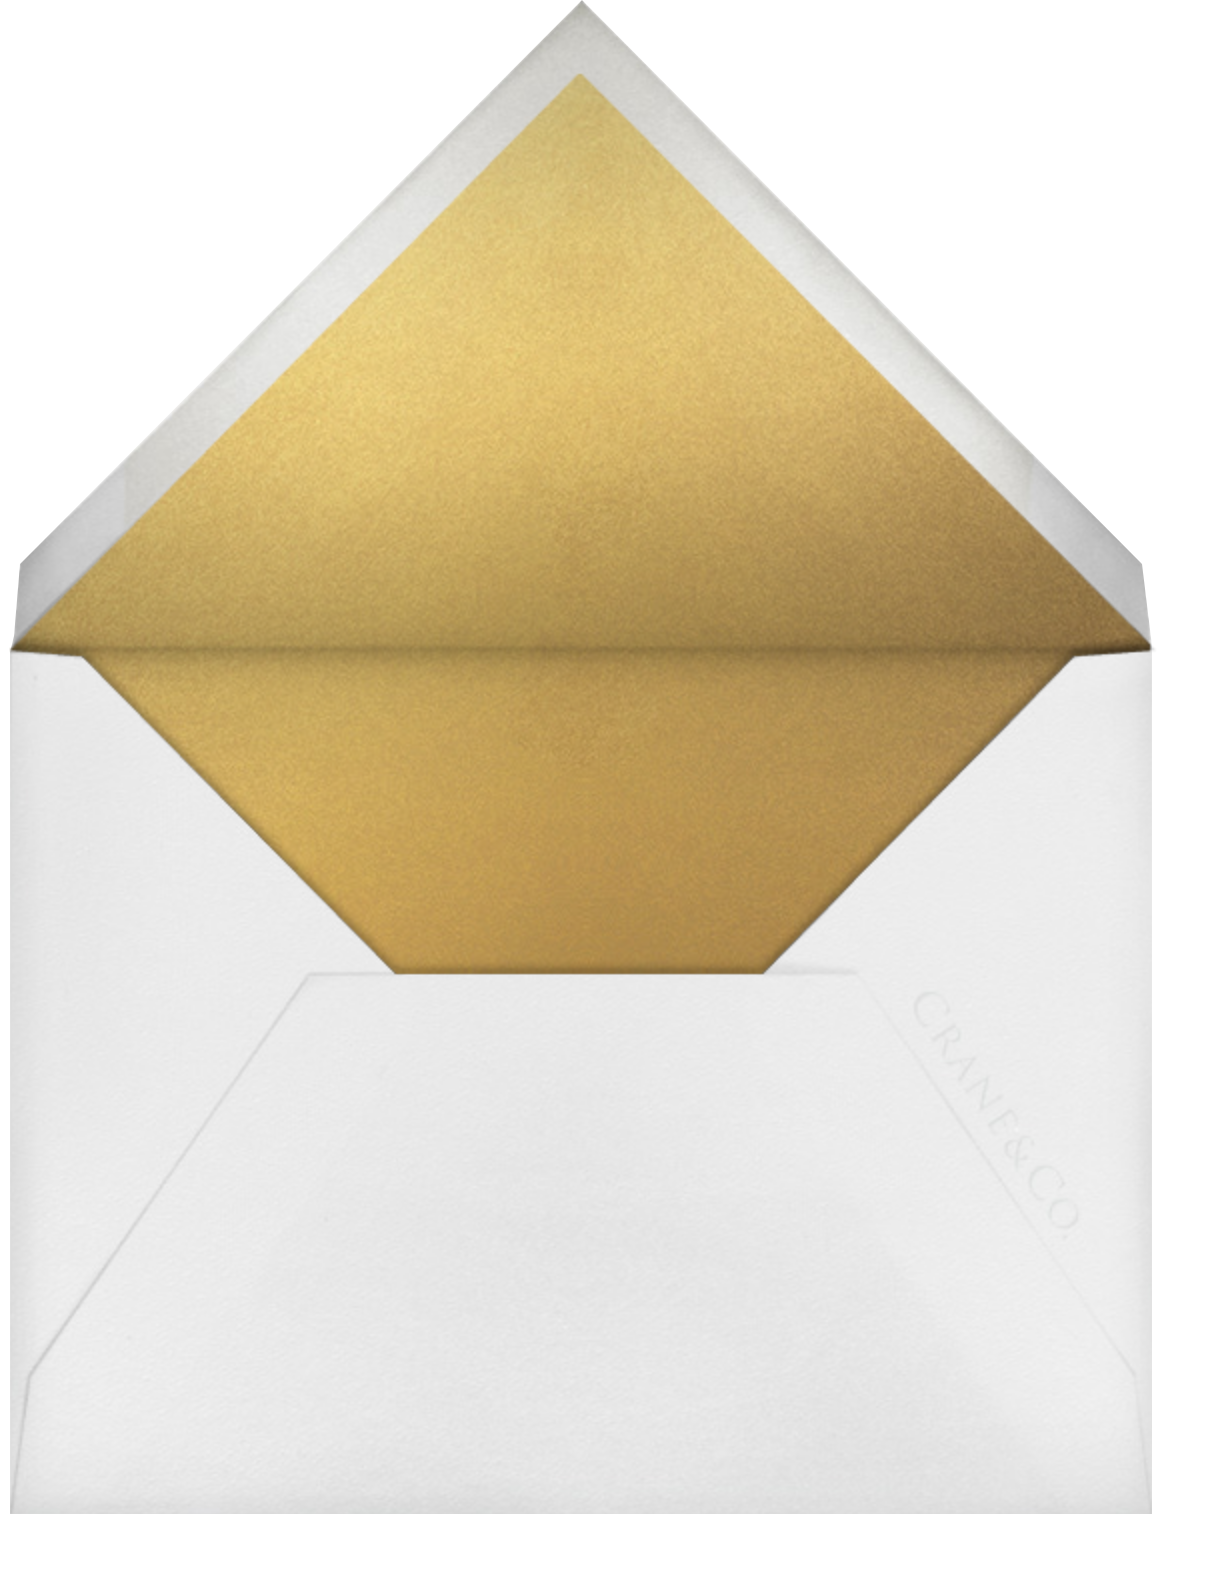 Thank You (Stationery) - Paperless Post - General - envelope back